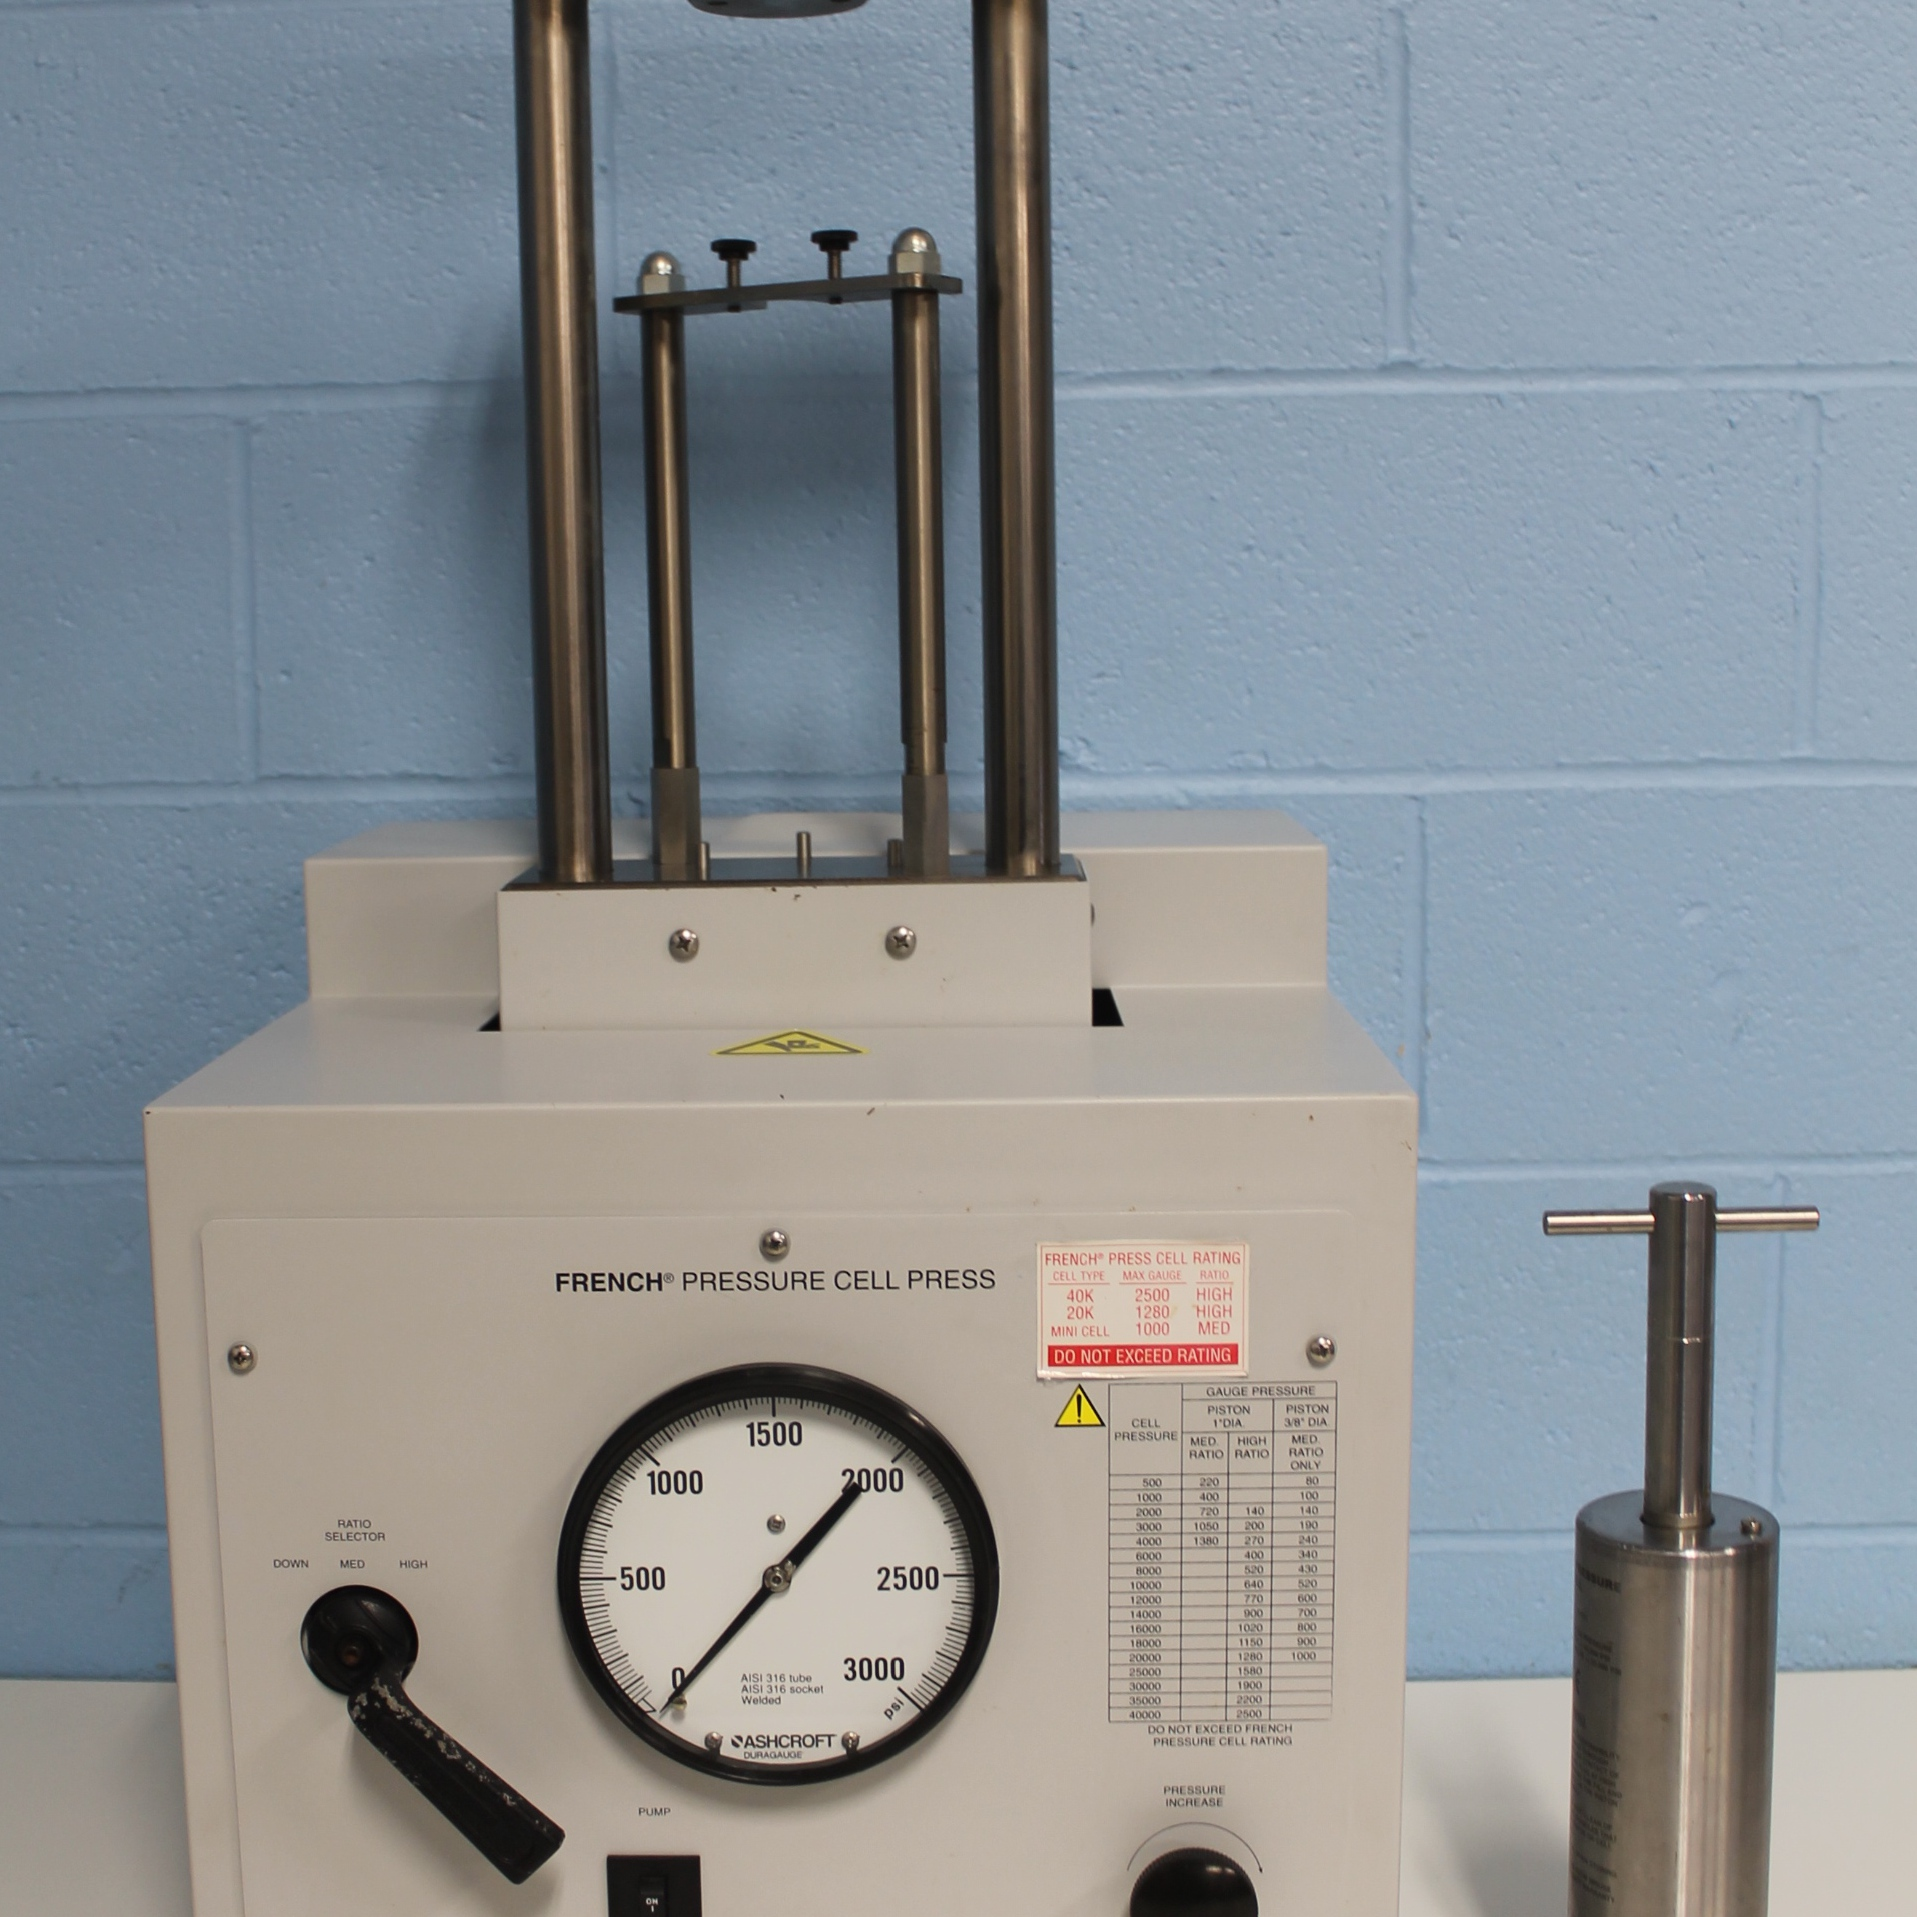 Thermo Spectronic French Pressure Cell Press Model FA-078 Image